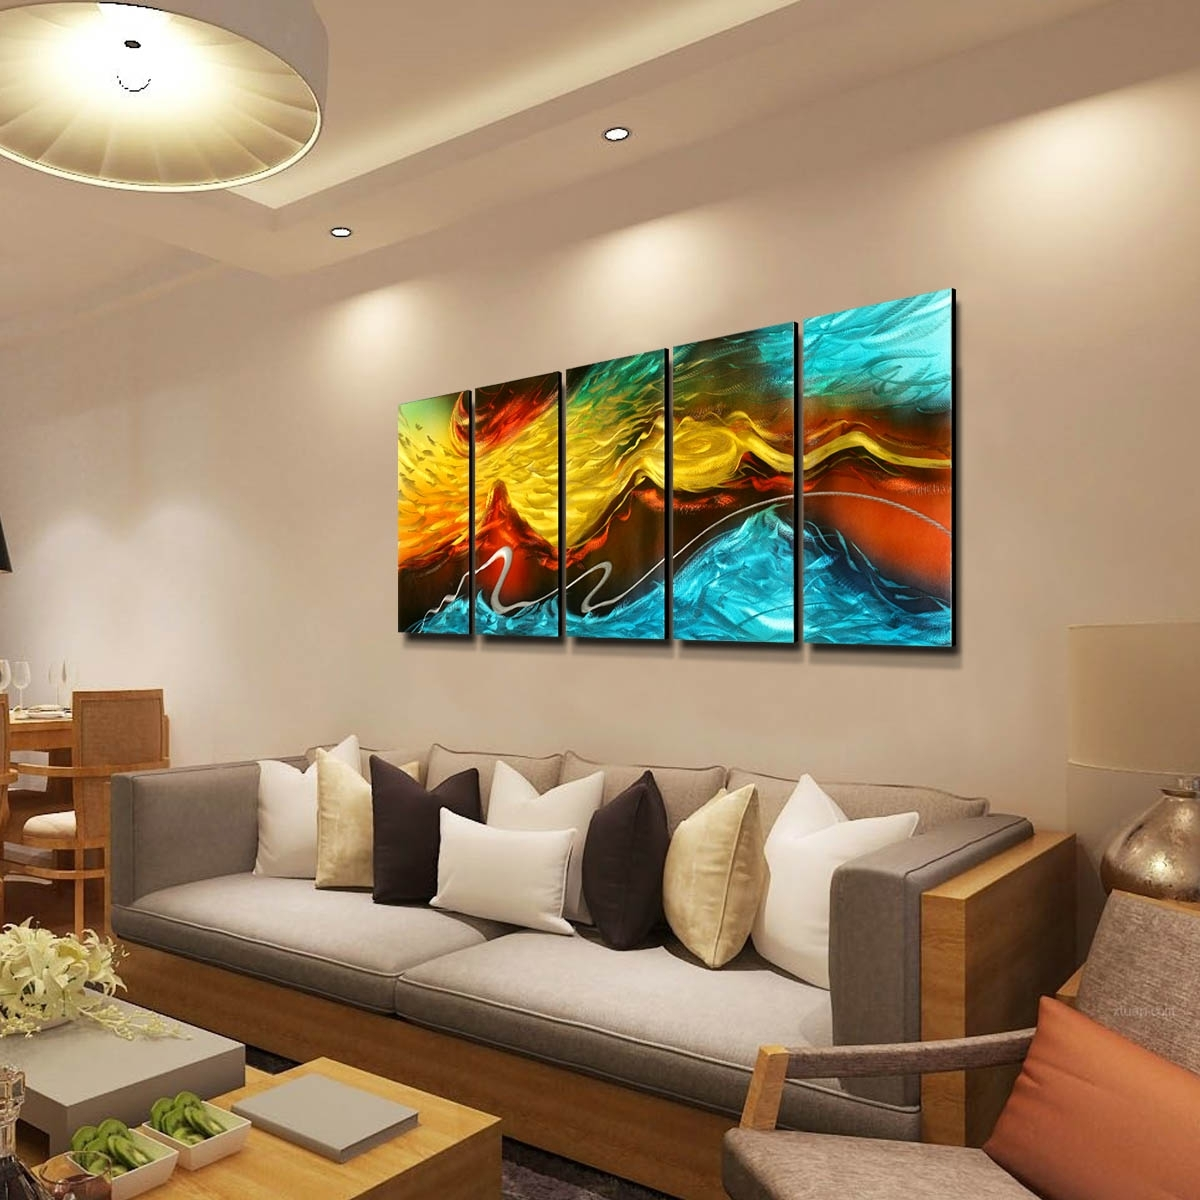 Best And Cheap Wall Hangings Tooarts Fire And Ice Modern Painting Intended For Most Current Abstract Wall Art For Living Room (View 13 of 20)